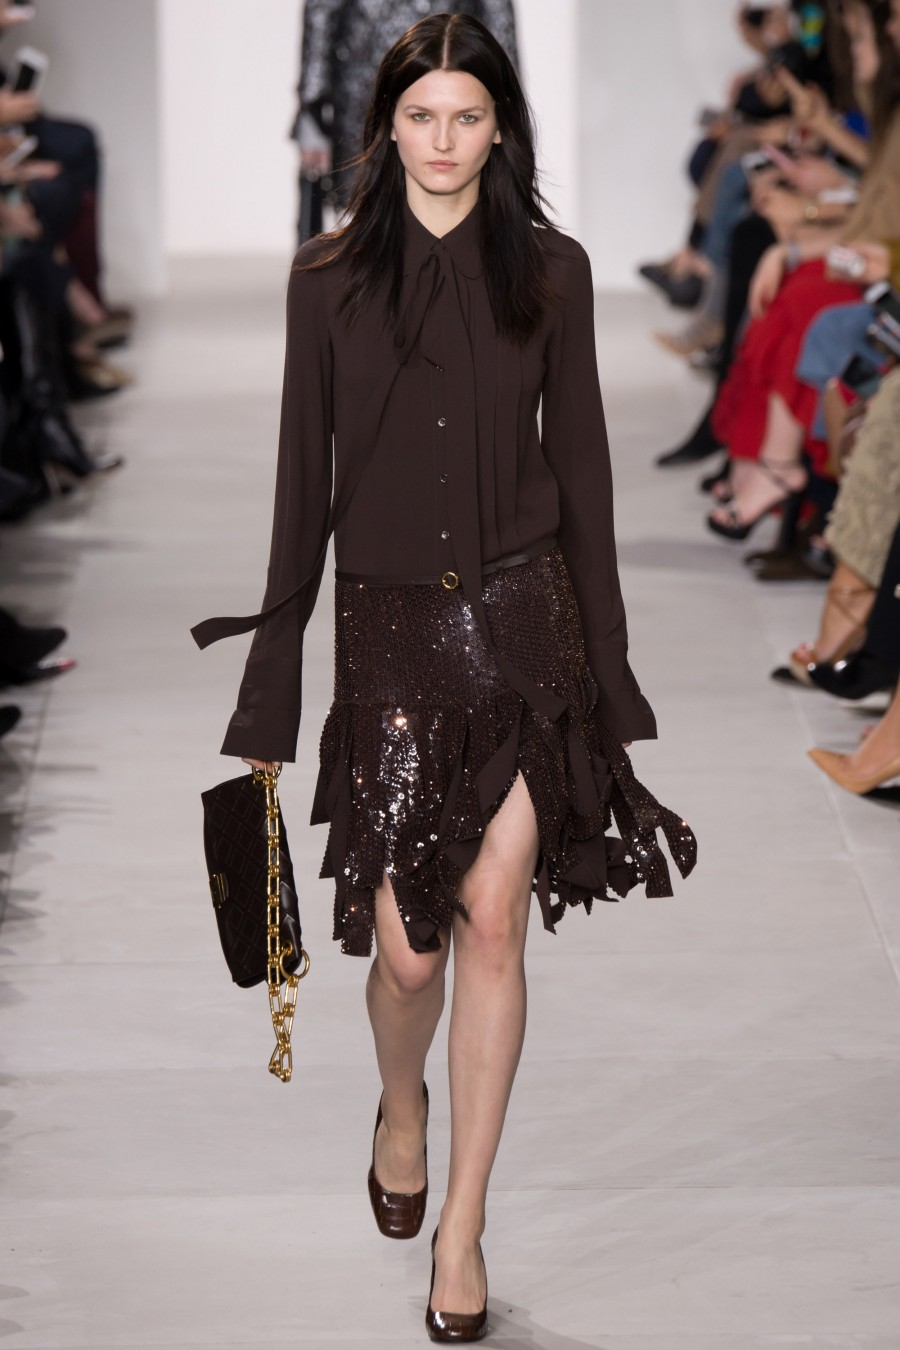 Michael Kors Fall 2016 Collection